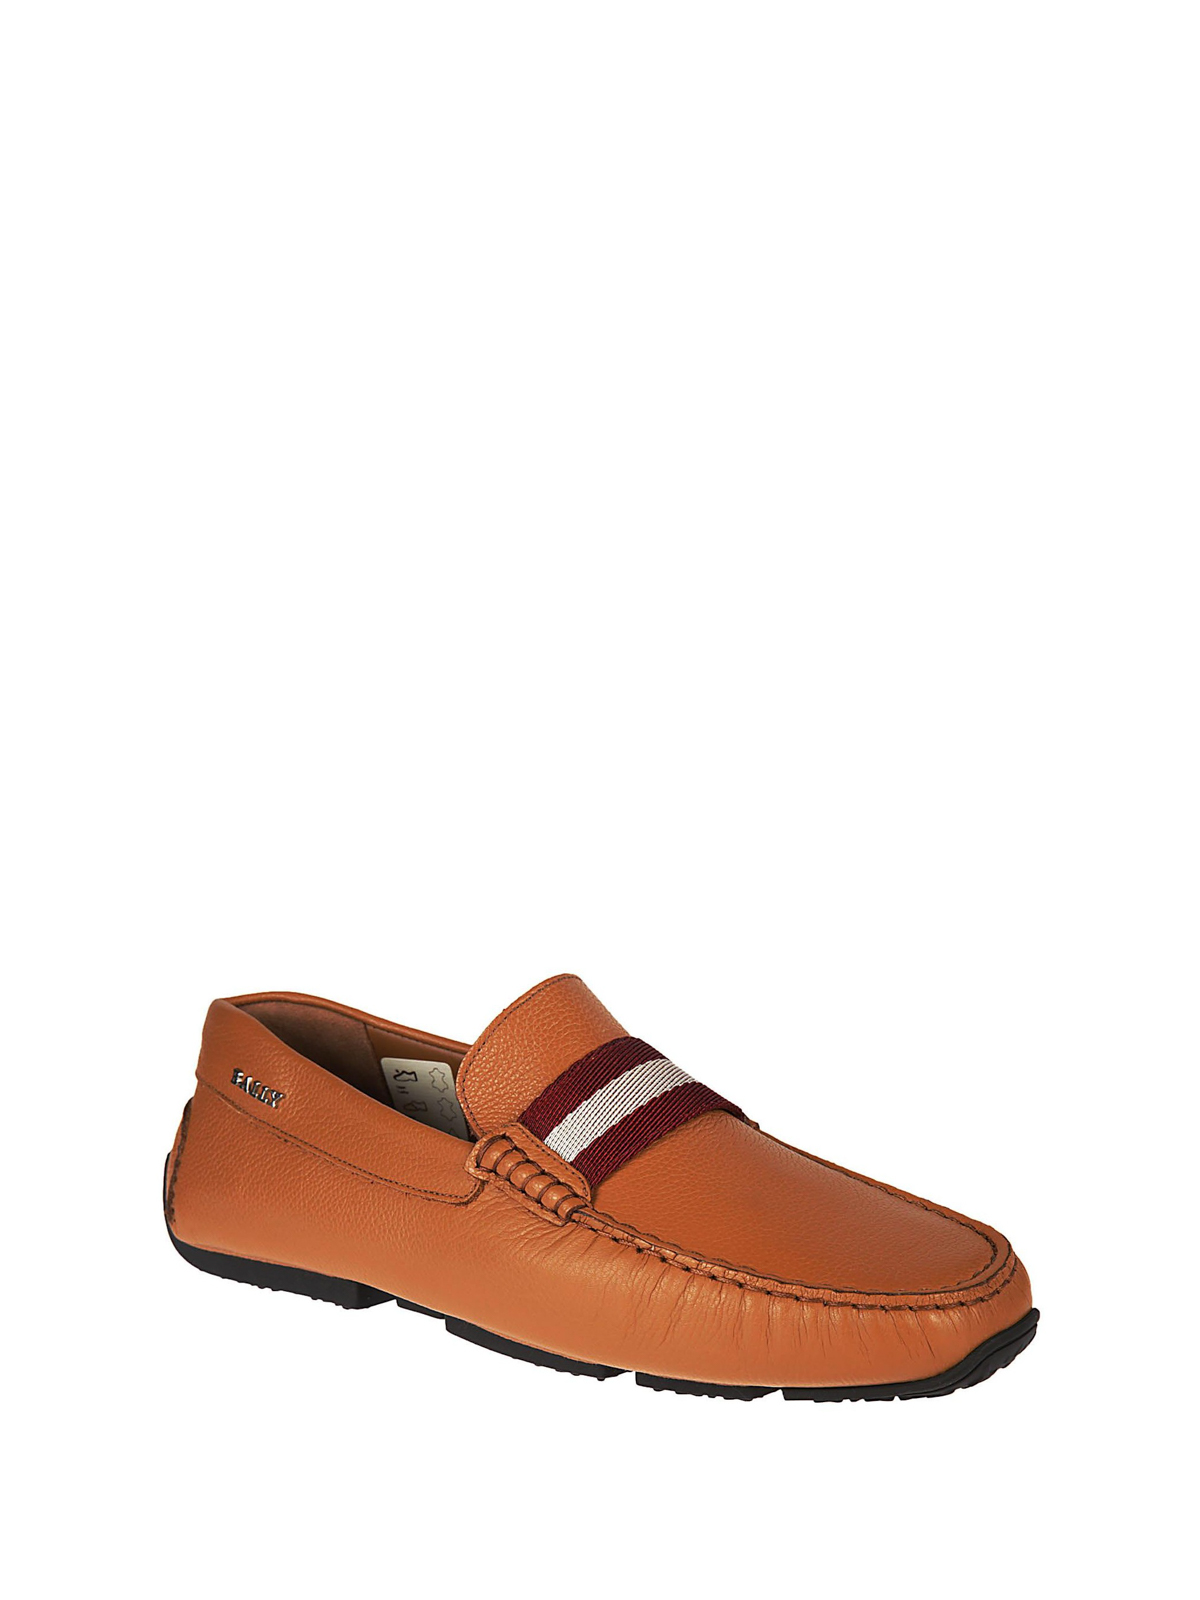 Bally Shoes Online Australia